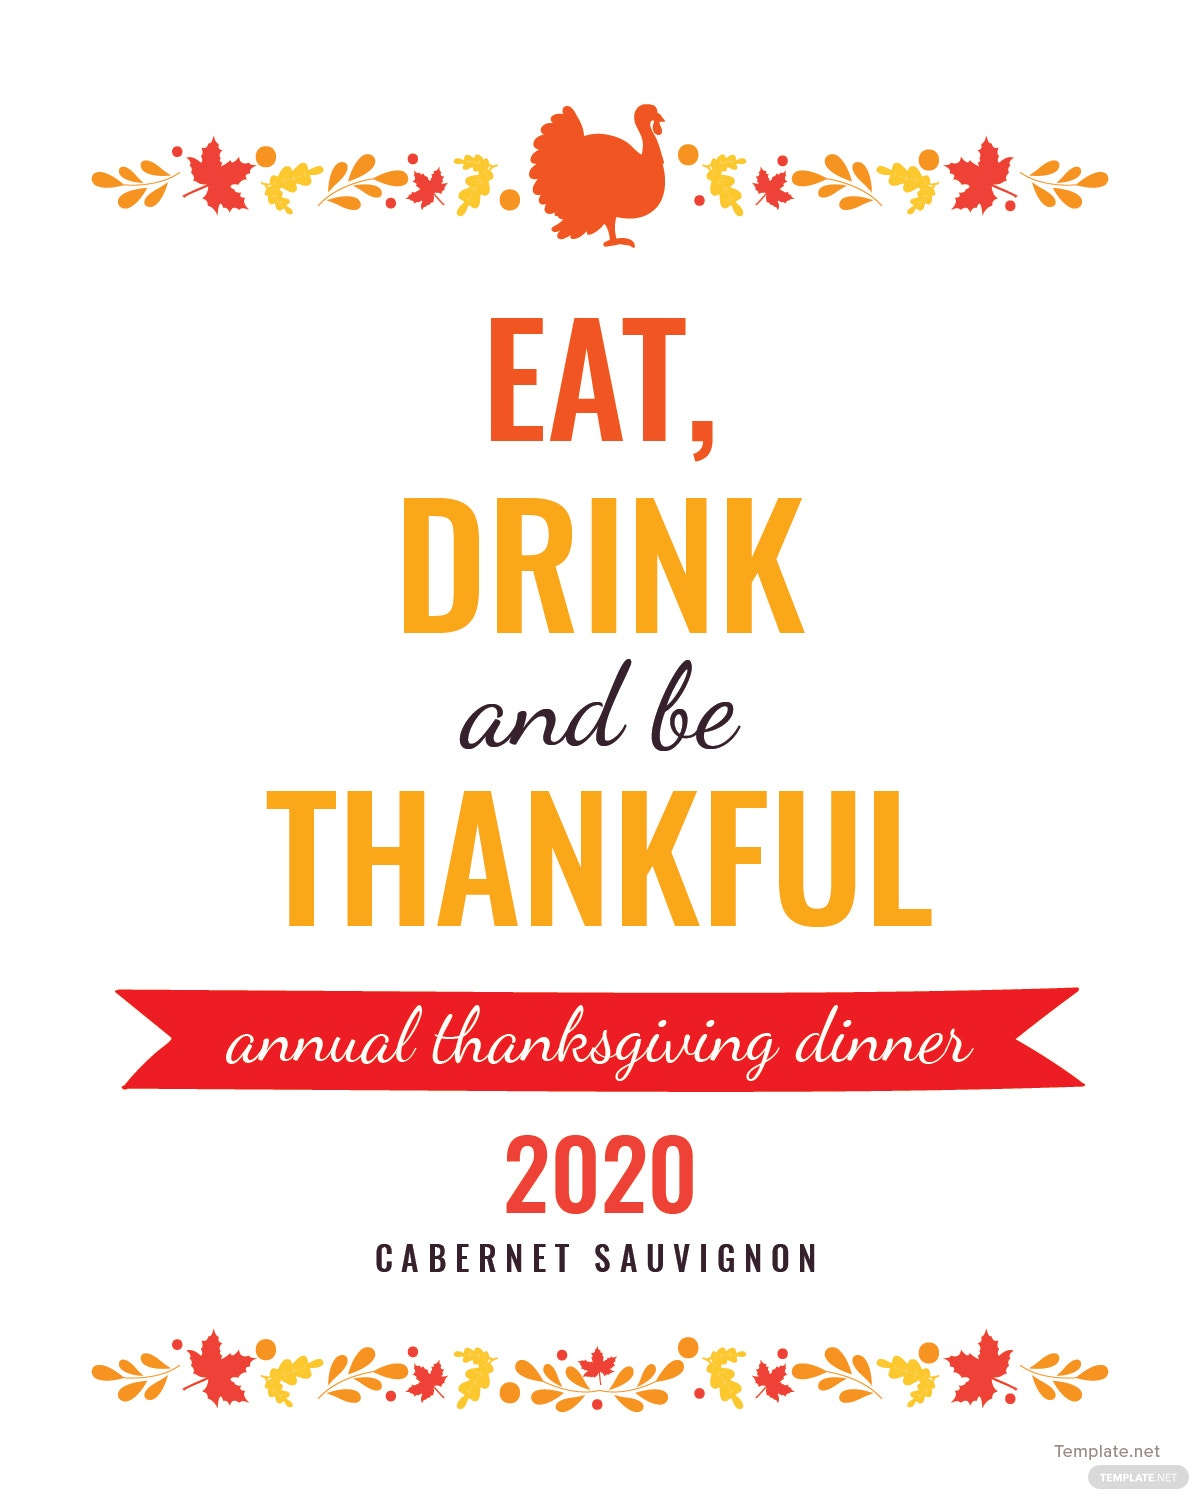 Free Thanksgiving Wine Bottle Label Template In PSD, MS